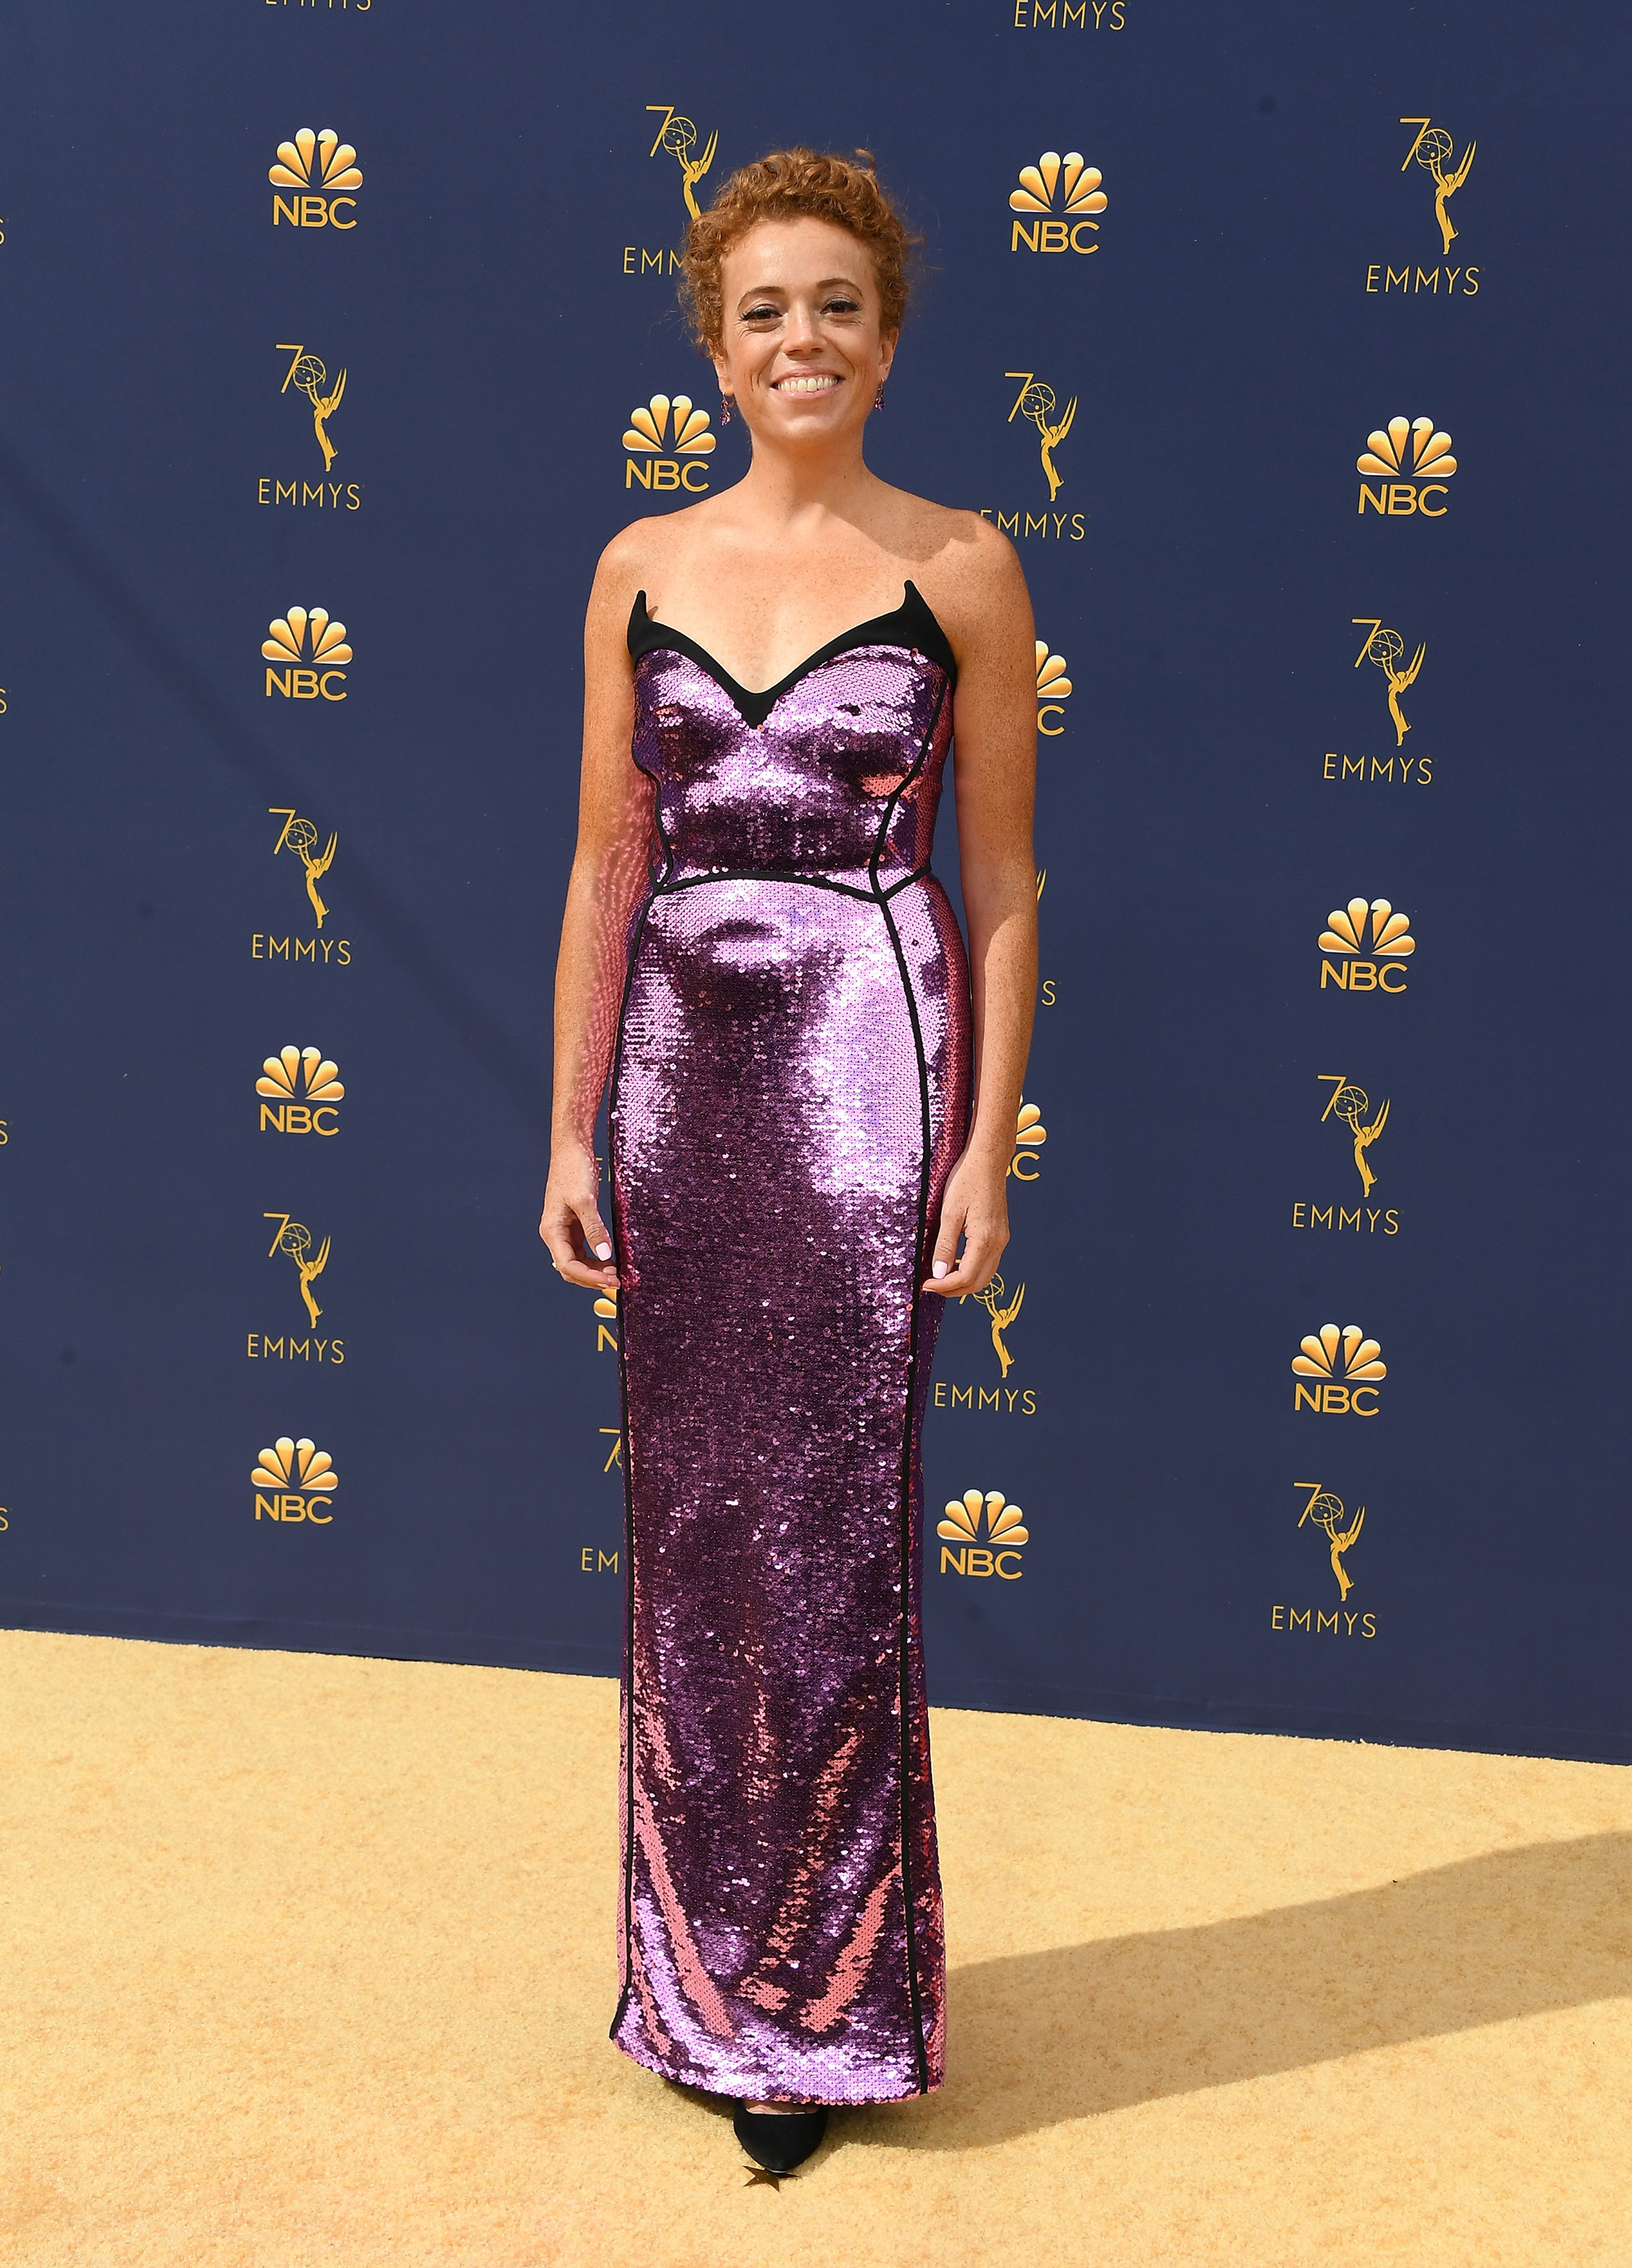 LOS ANGELES, CA - SEPTEMBER 17:  Michelle Wolf attends the 70th Emmy Awards at Microsoft Theater on September 17, 2018 in Los Angeles, California.  (Photo by Steve Granitz/WireImage,)